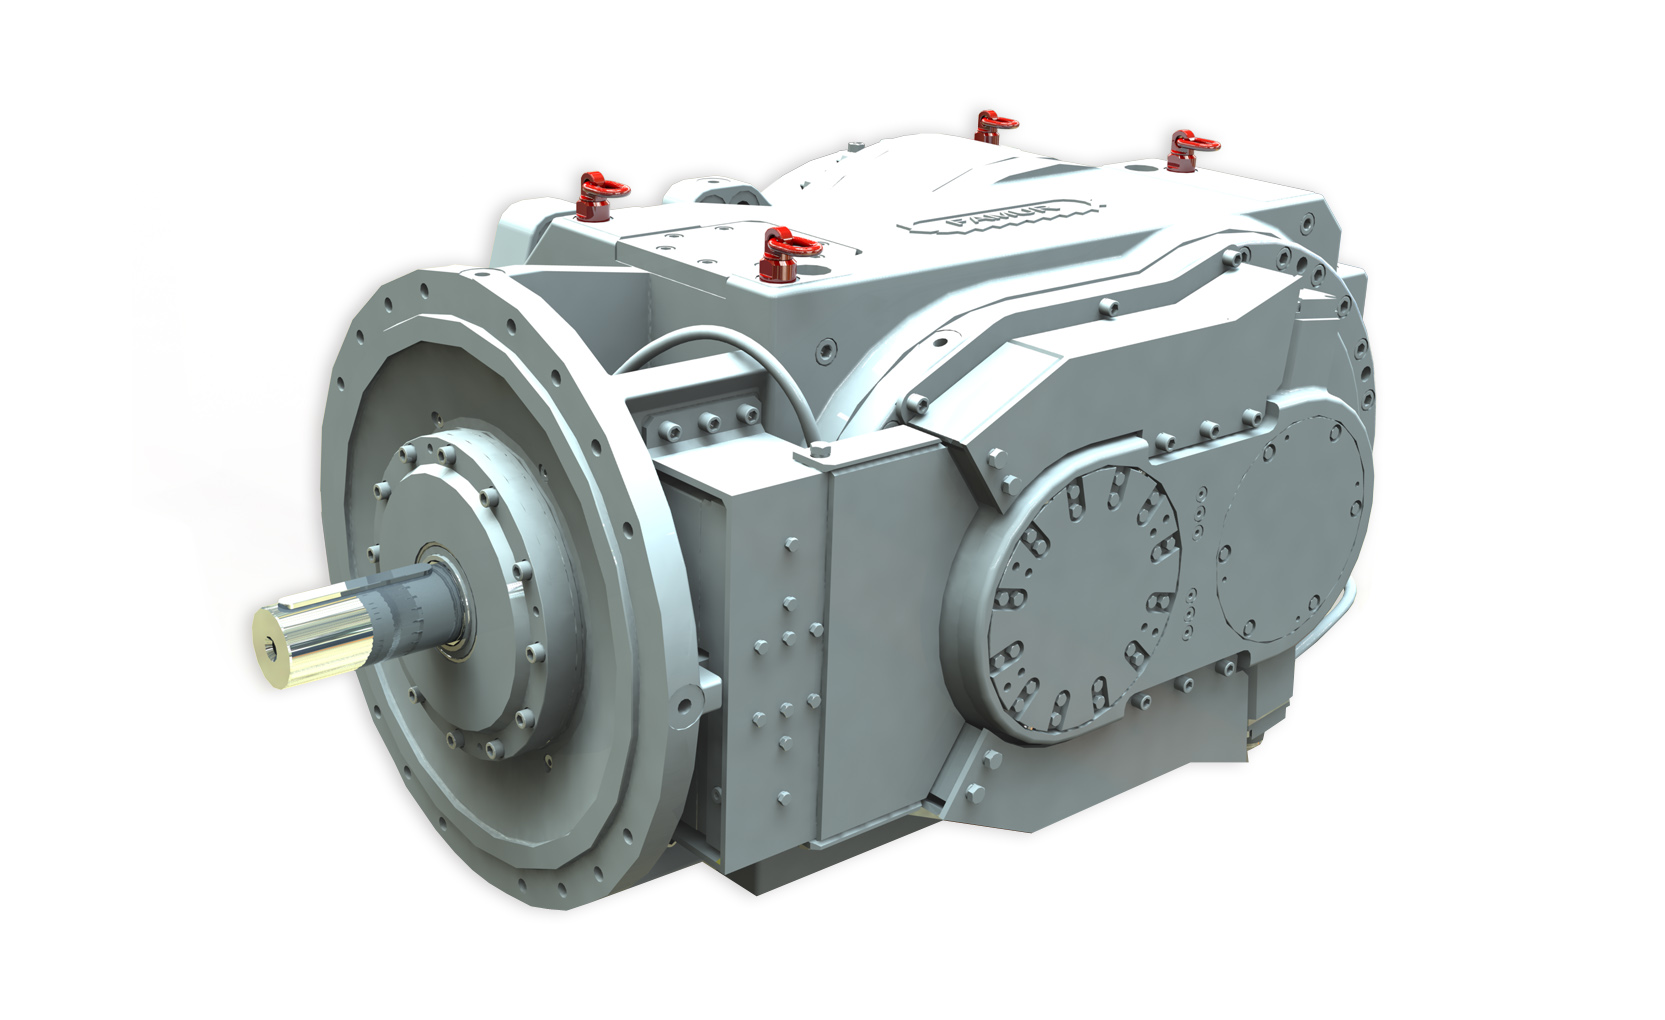 FKPL 35 - PLANETARY HELICAL GEARBOX - Famur